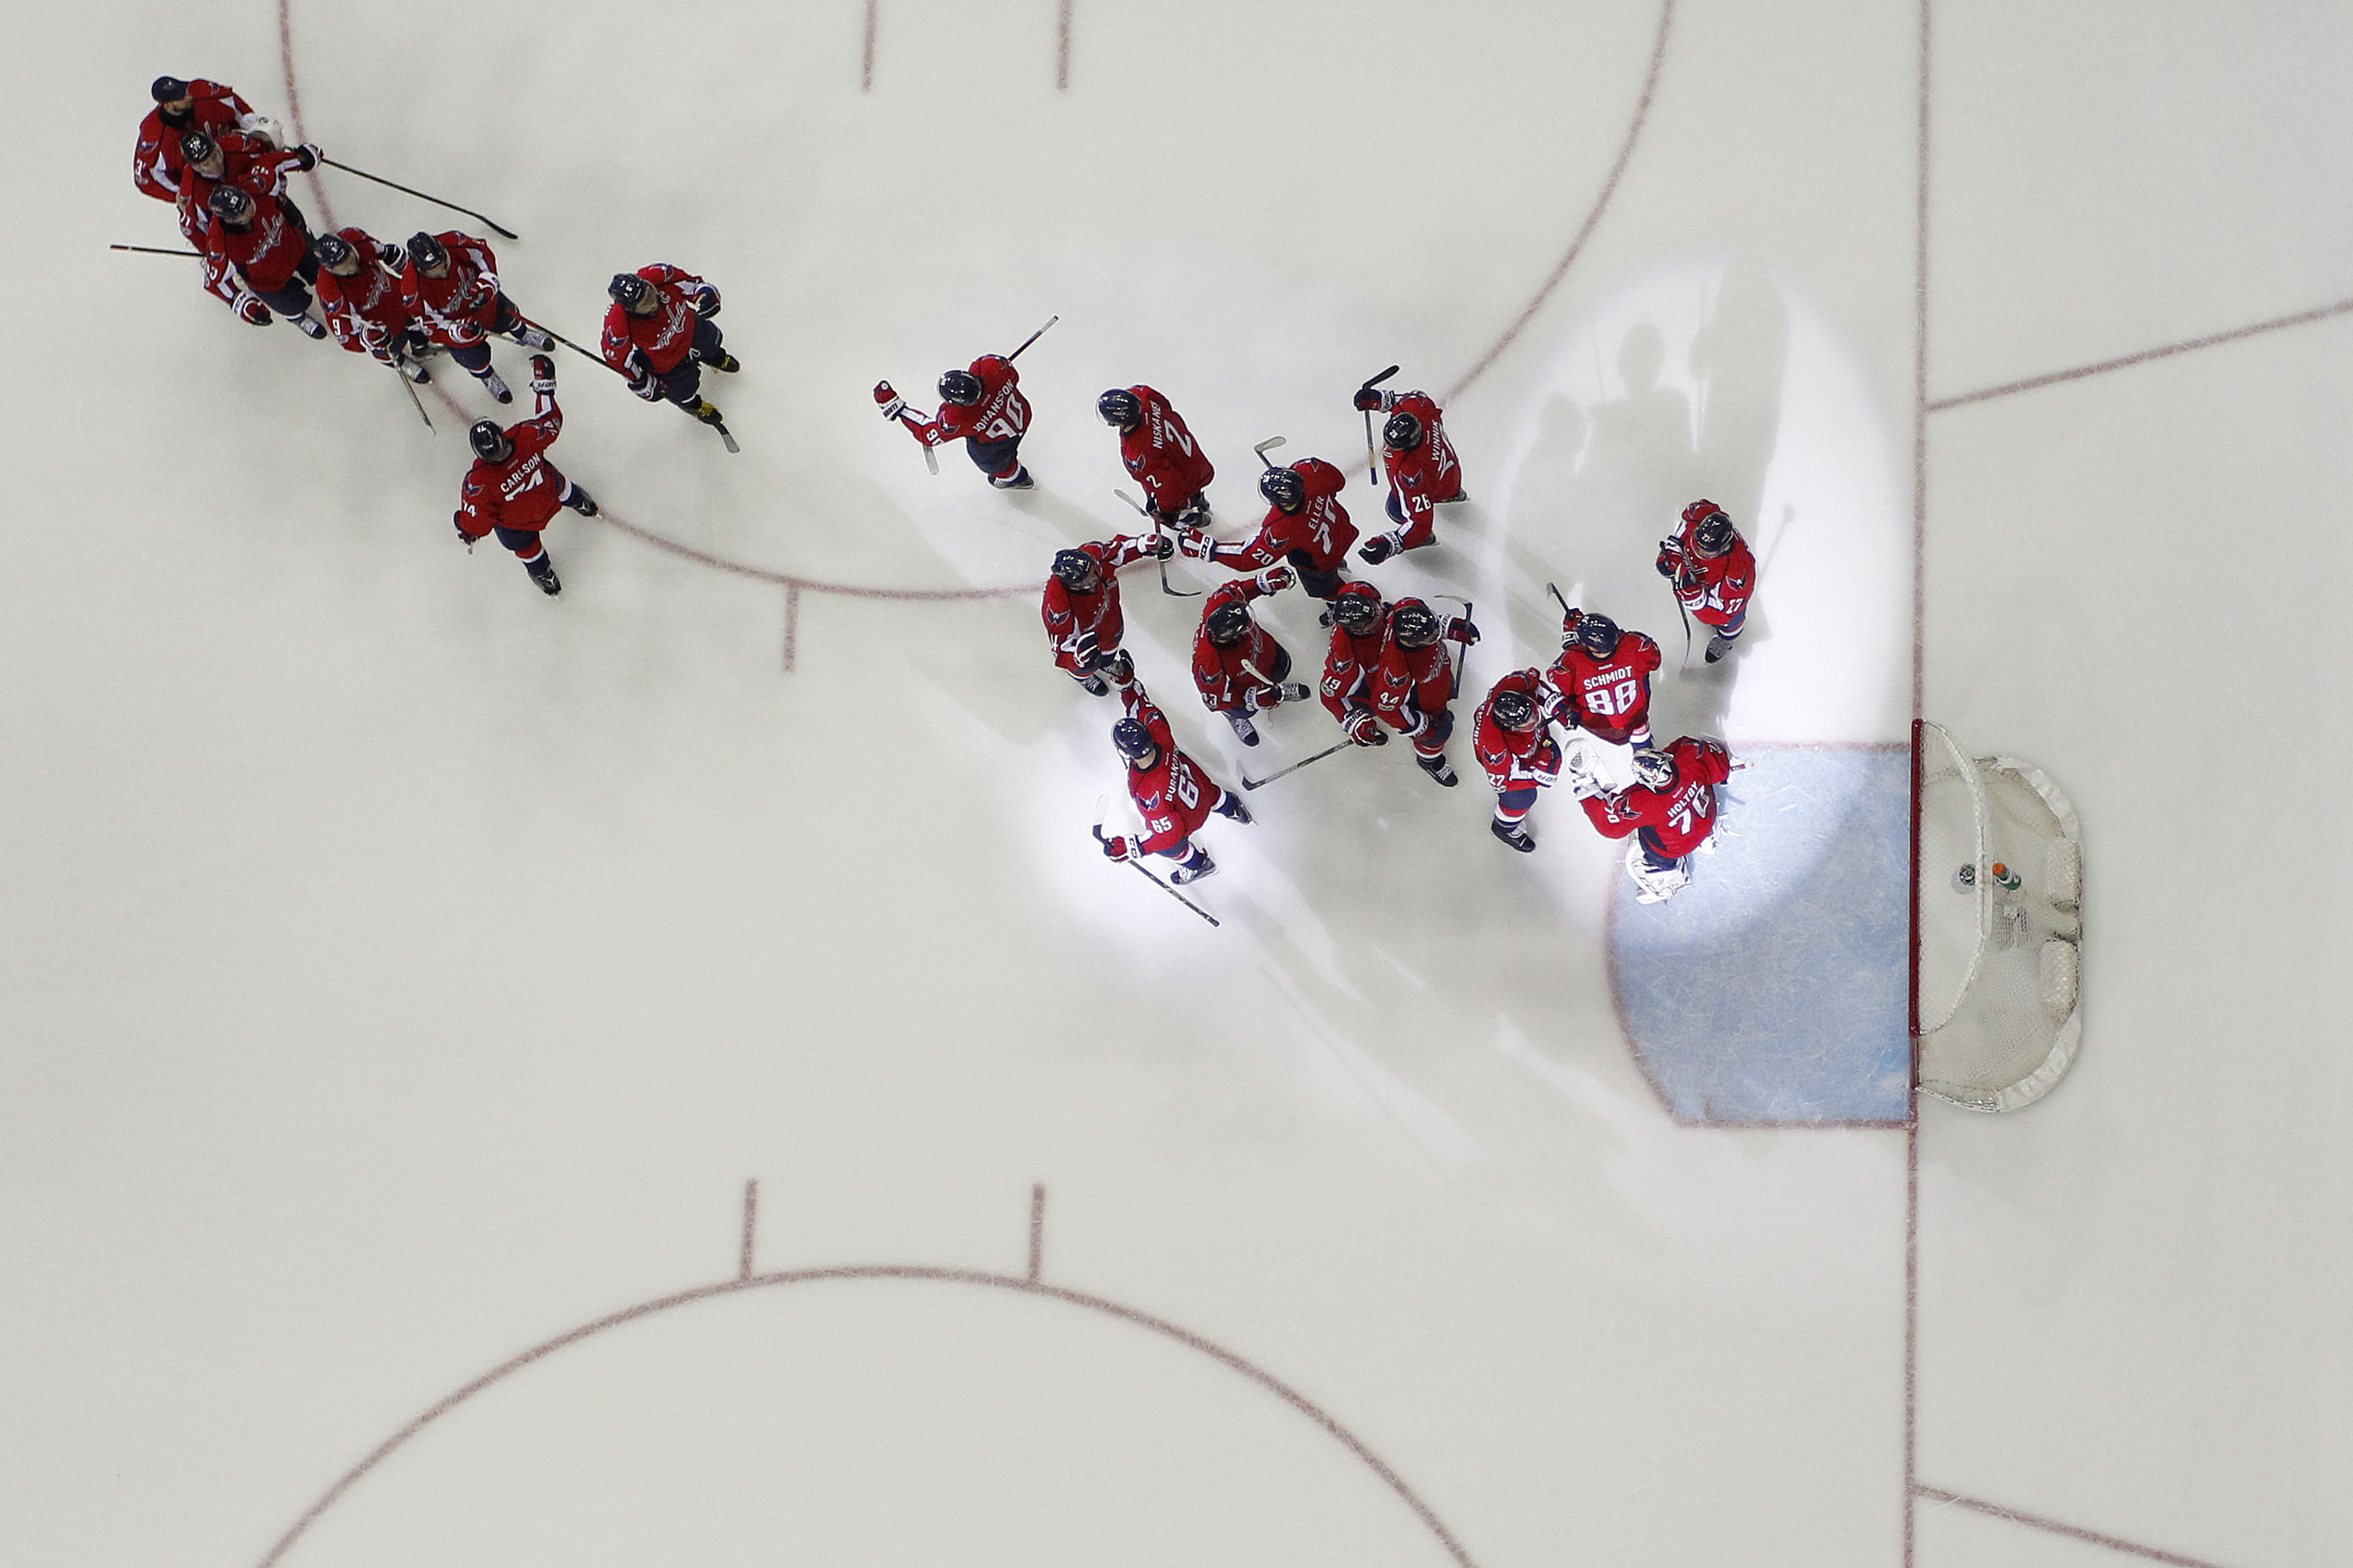 NHL: Stanley Cup Playoffs-Pittsburgh Penguins at Washington Capitals